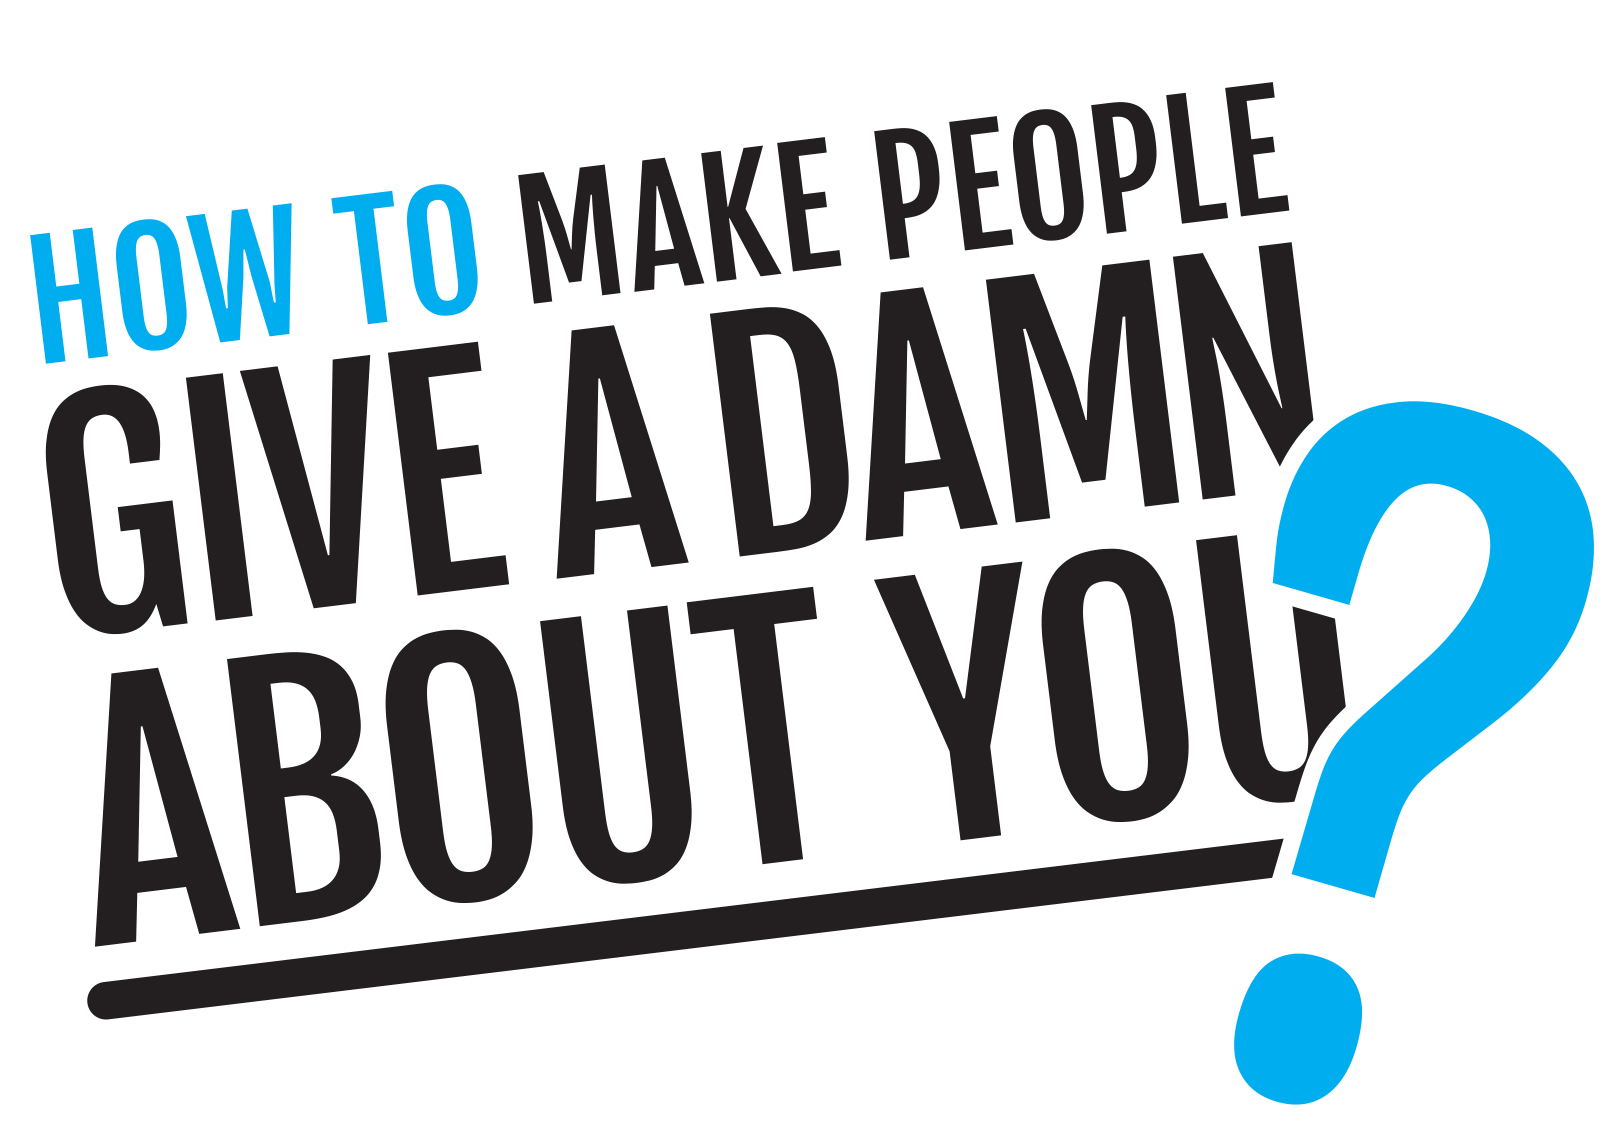 How to make people give a damn about you